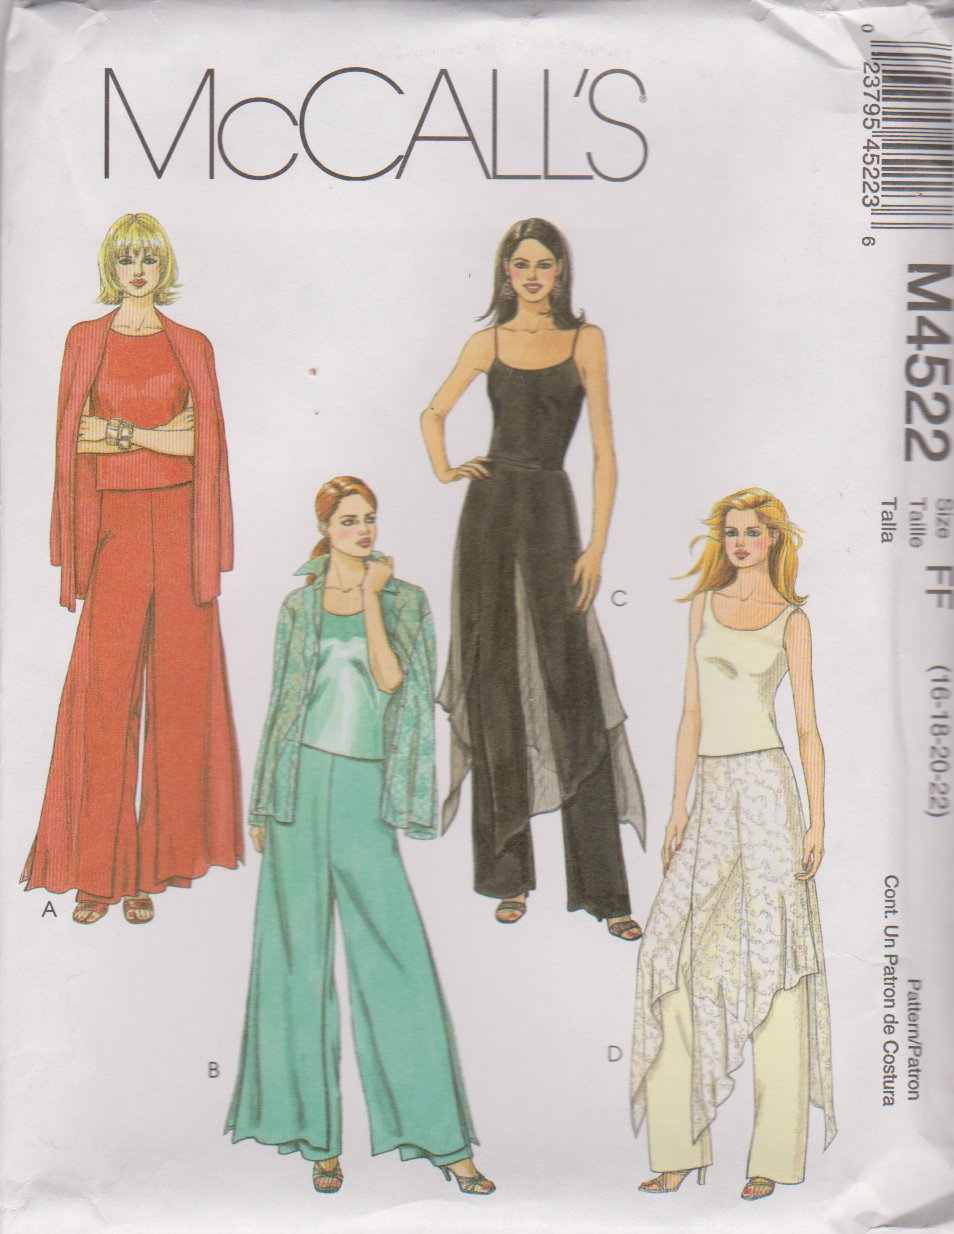 McCall's Sewing Pattern 4522 Misses Size 16-22 Fitted Long Pants With Overskirt Variations